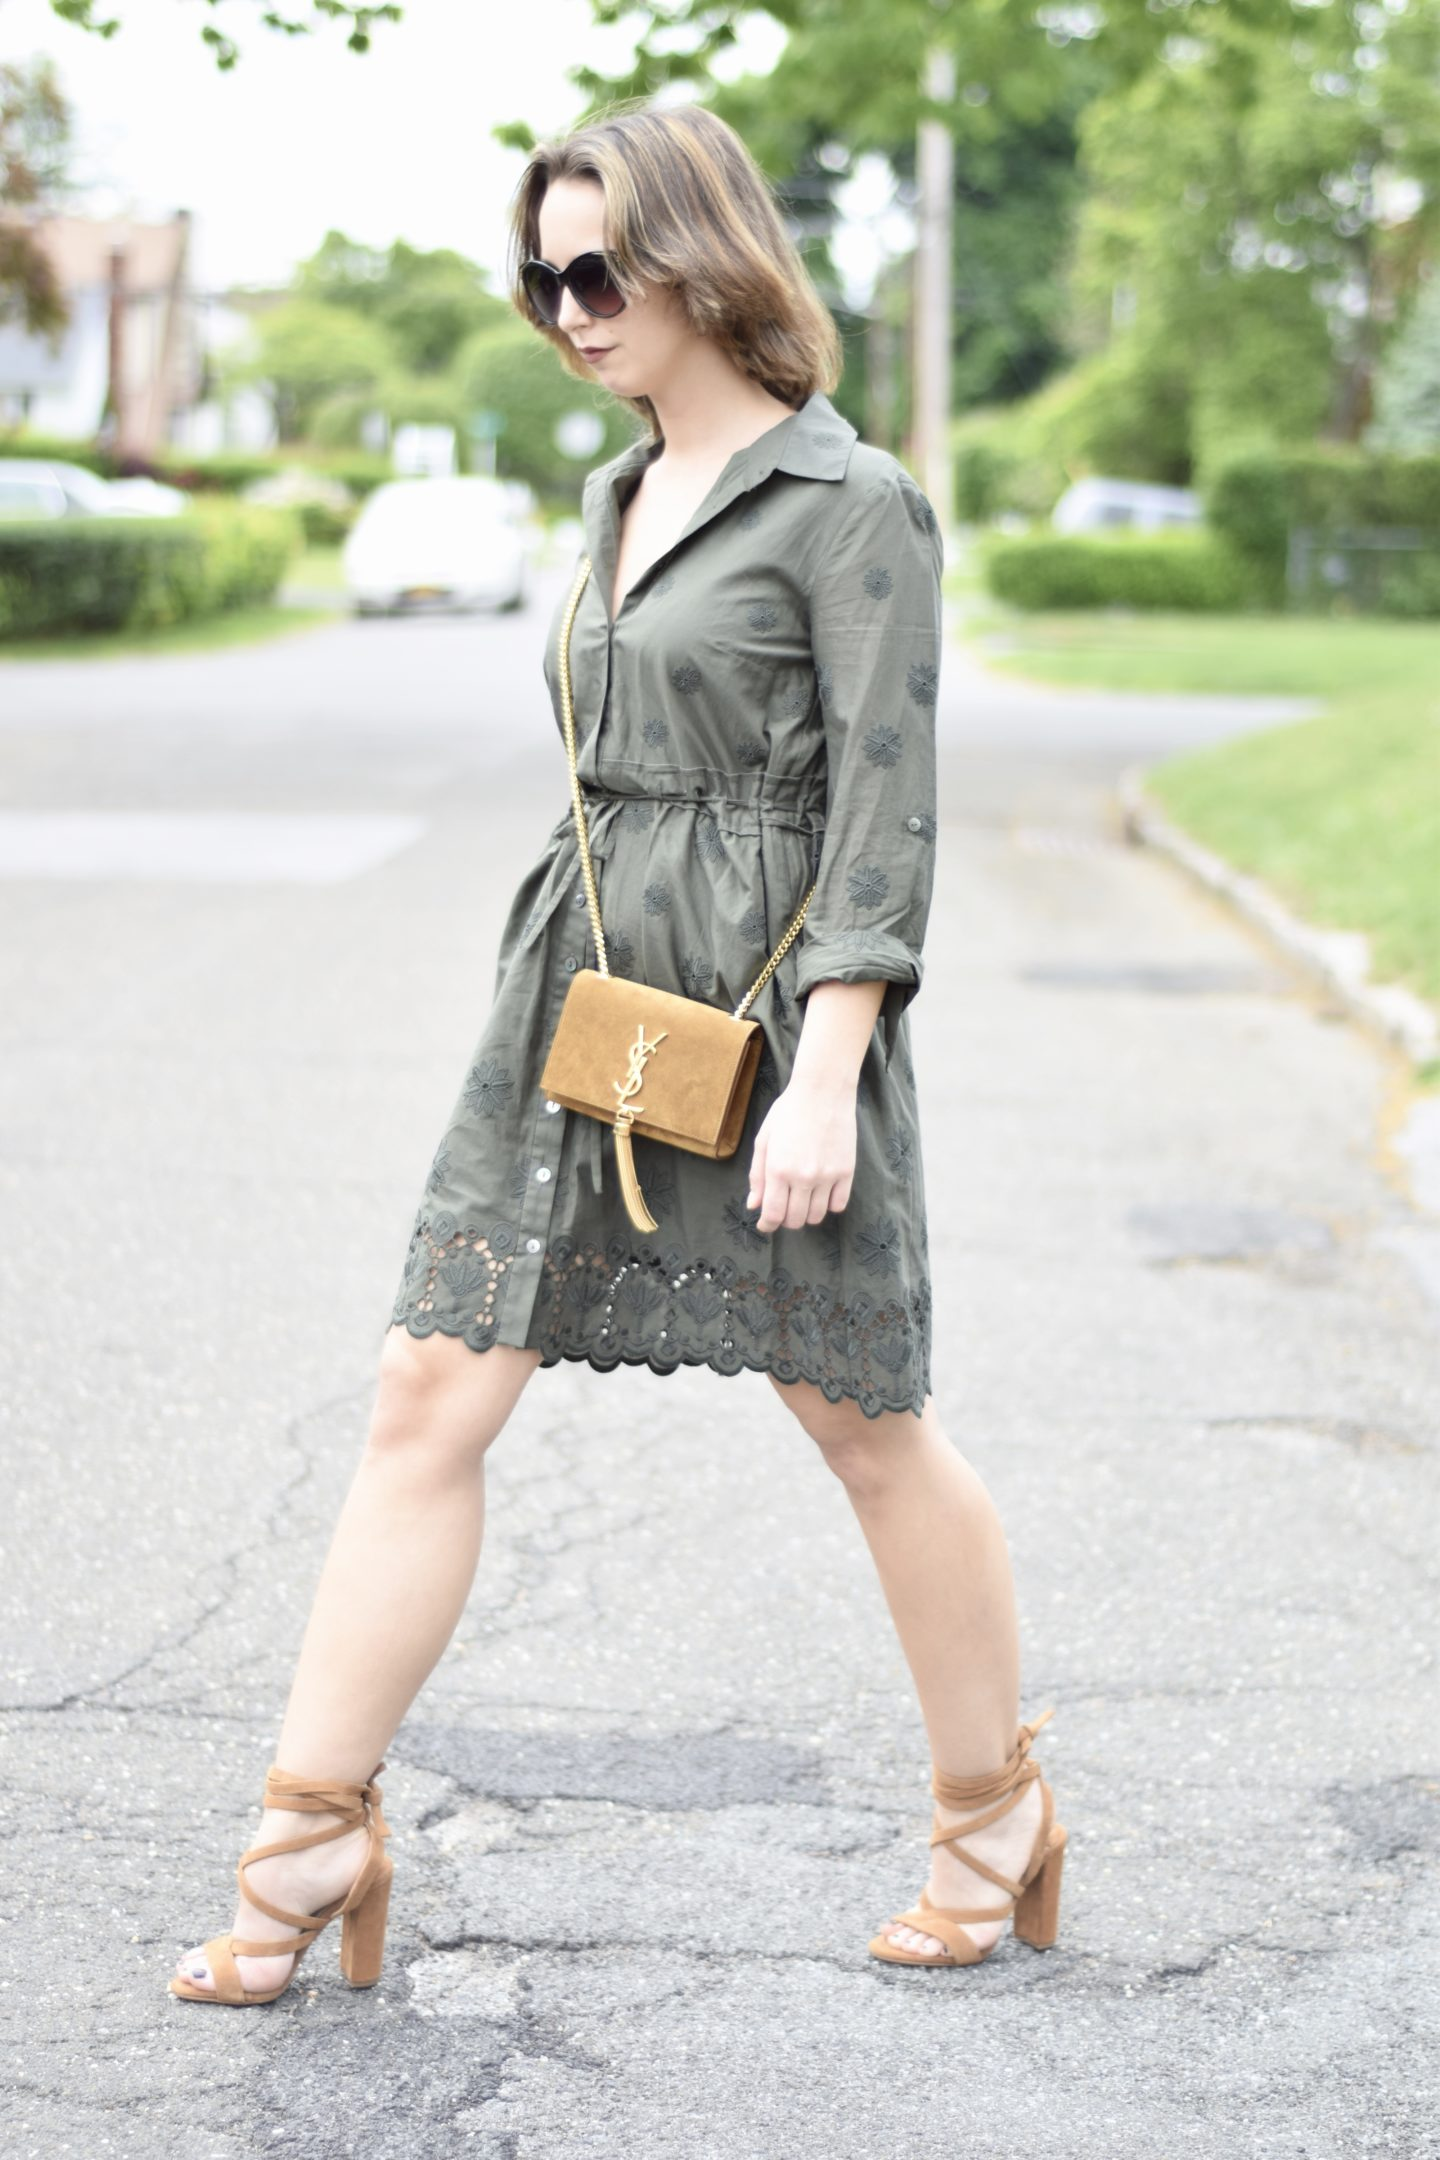 dvf-safari green-dress-ysl-outfit